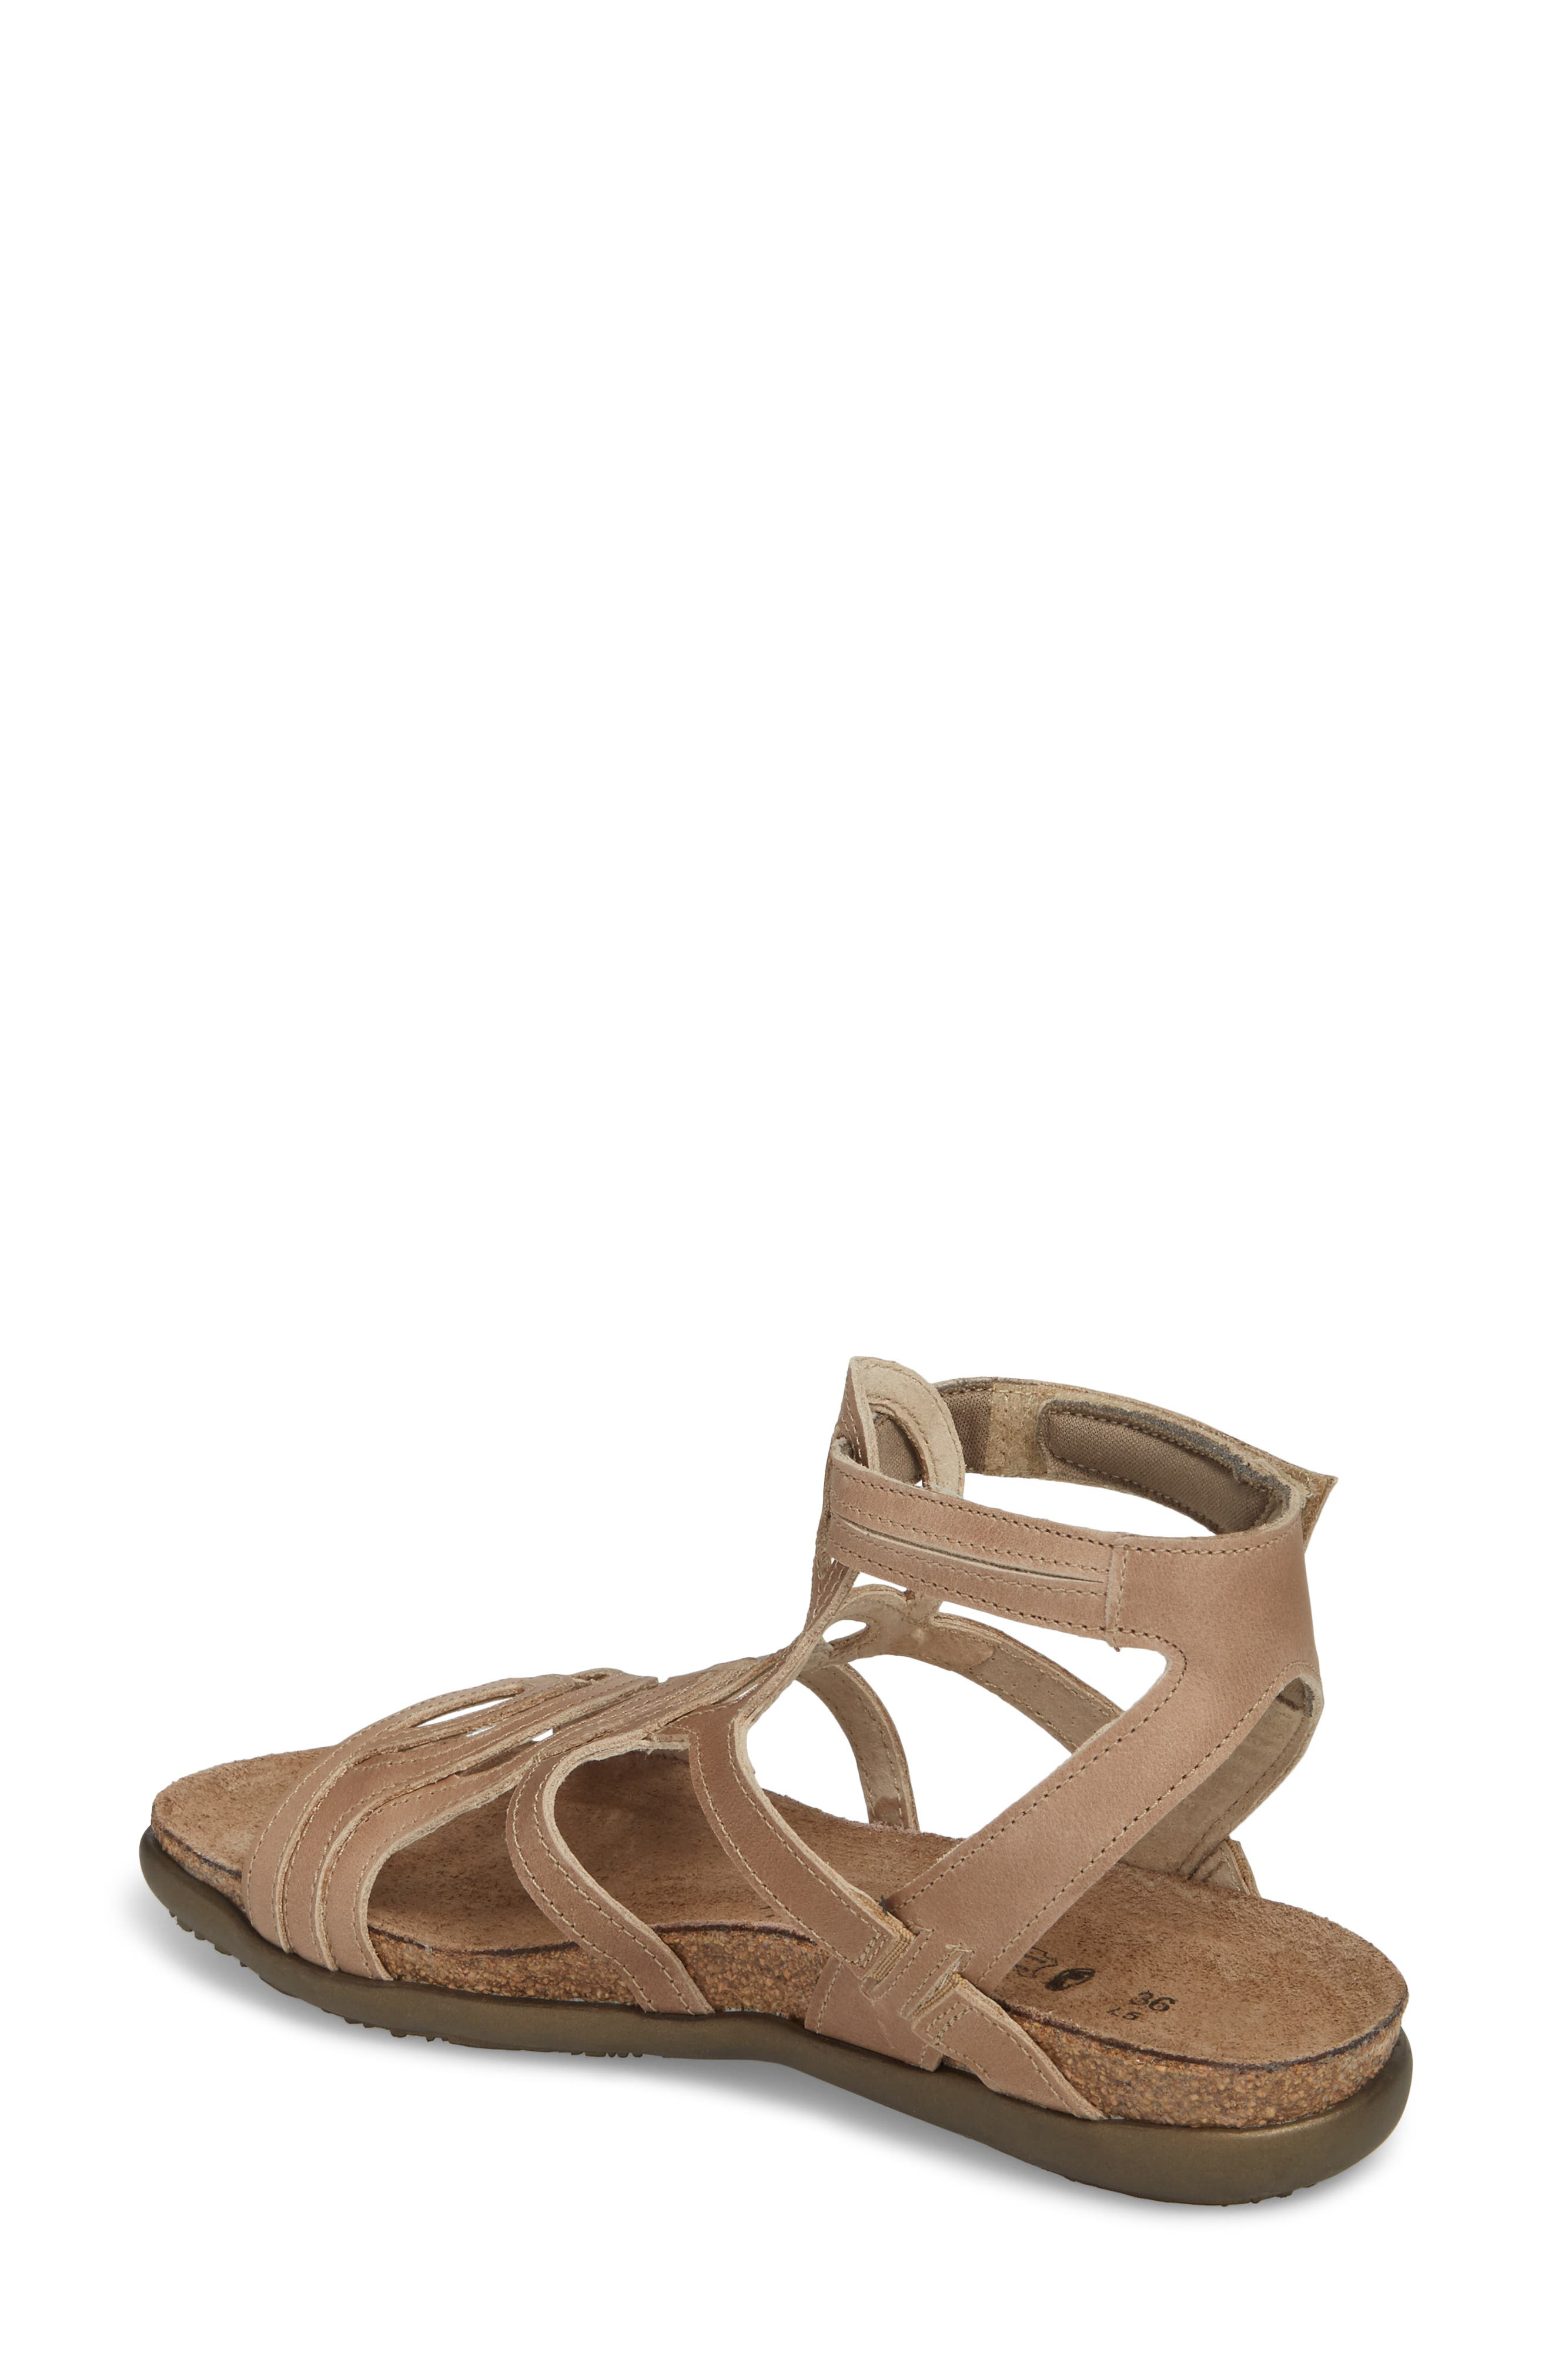 'Sara' Gladiator Sandal,                             Alternate thumbnail 2, color,                             KHAKI BEIGE LEATHER